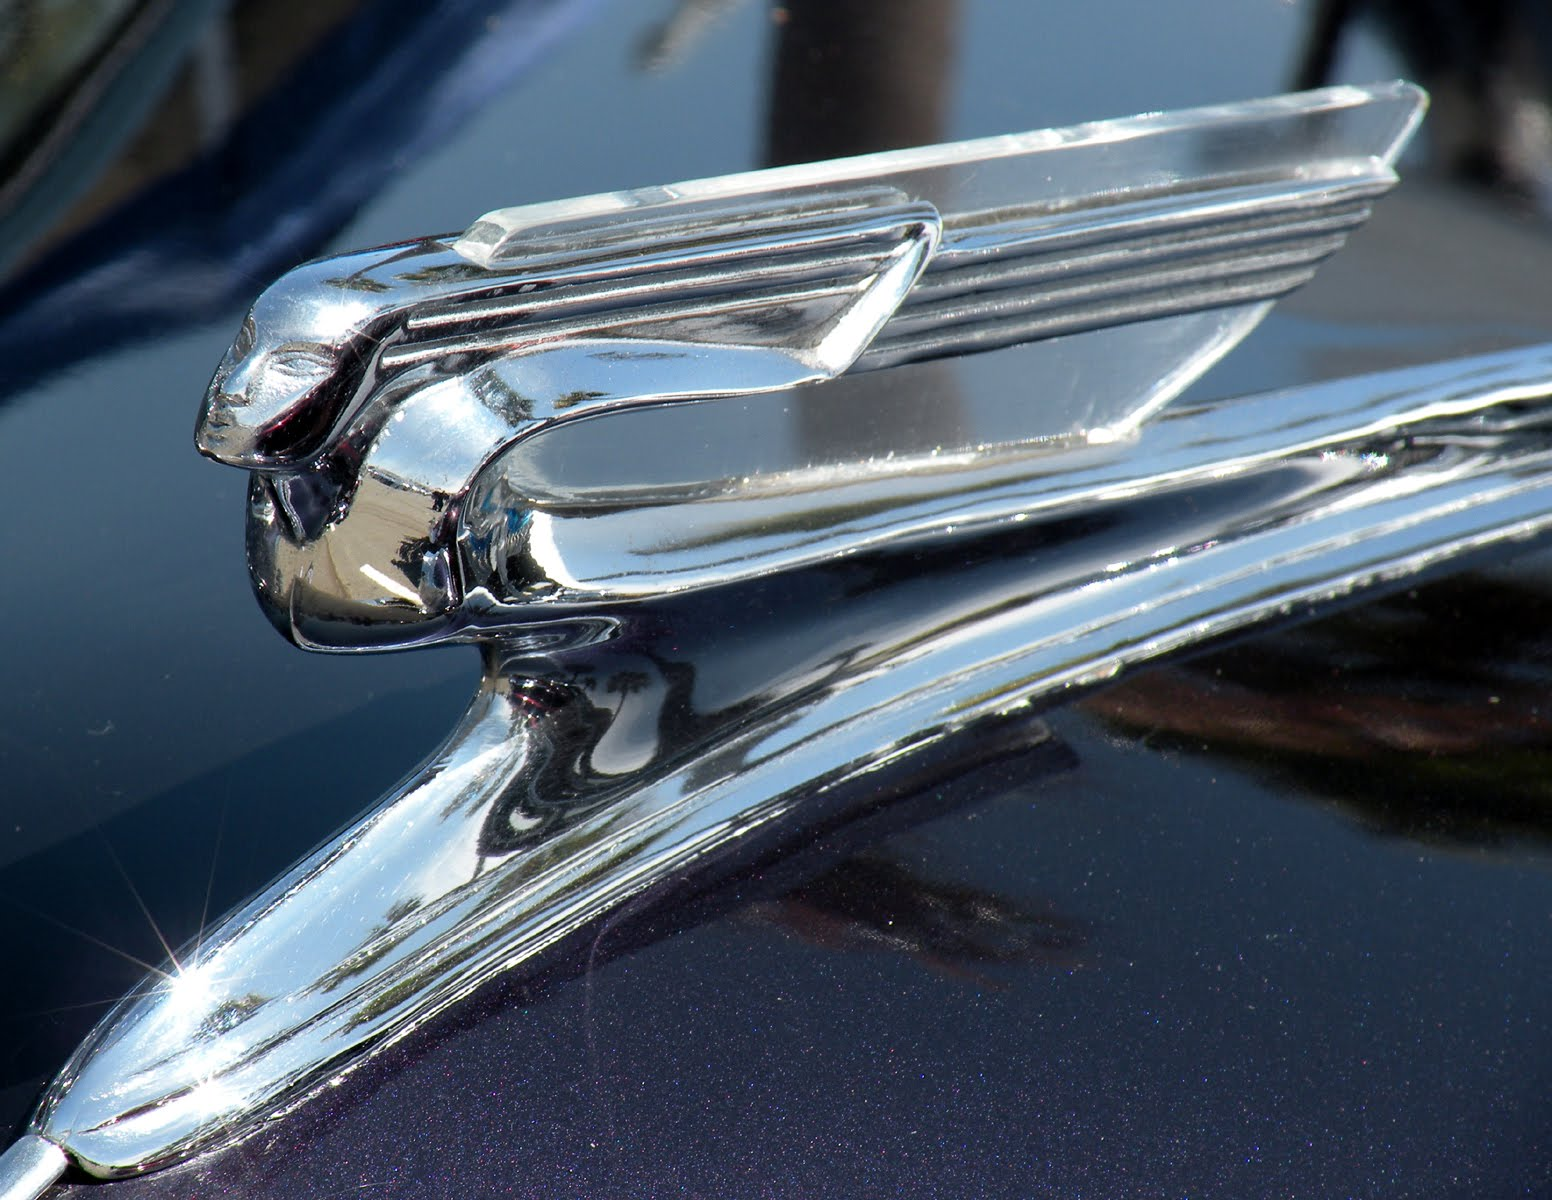 Falcon hood ornament - Wednesday August 25 2010